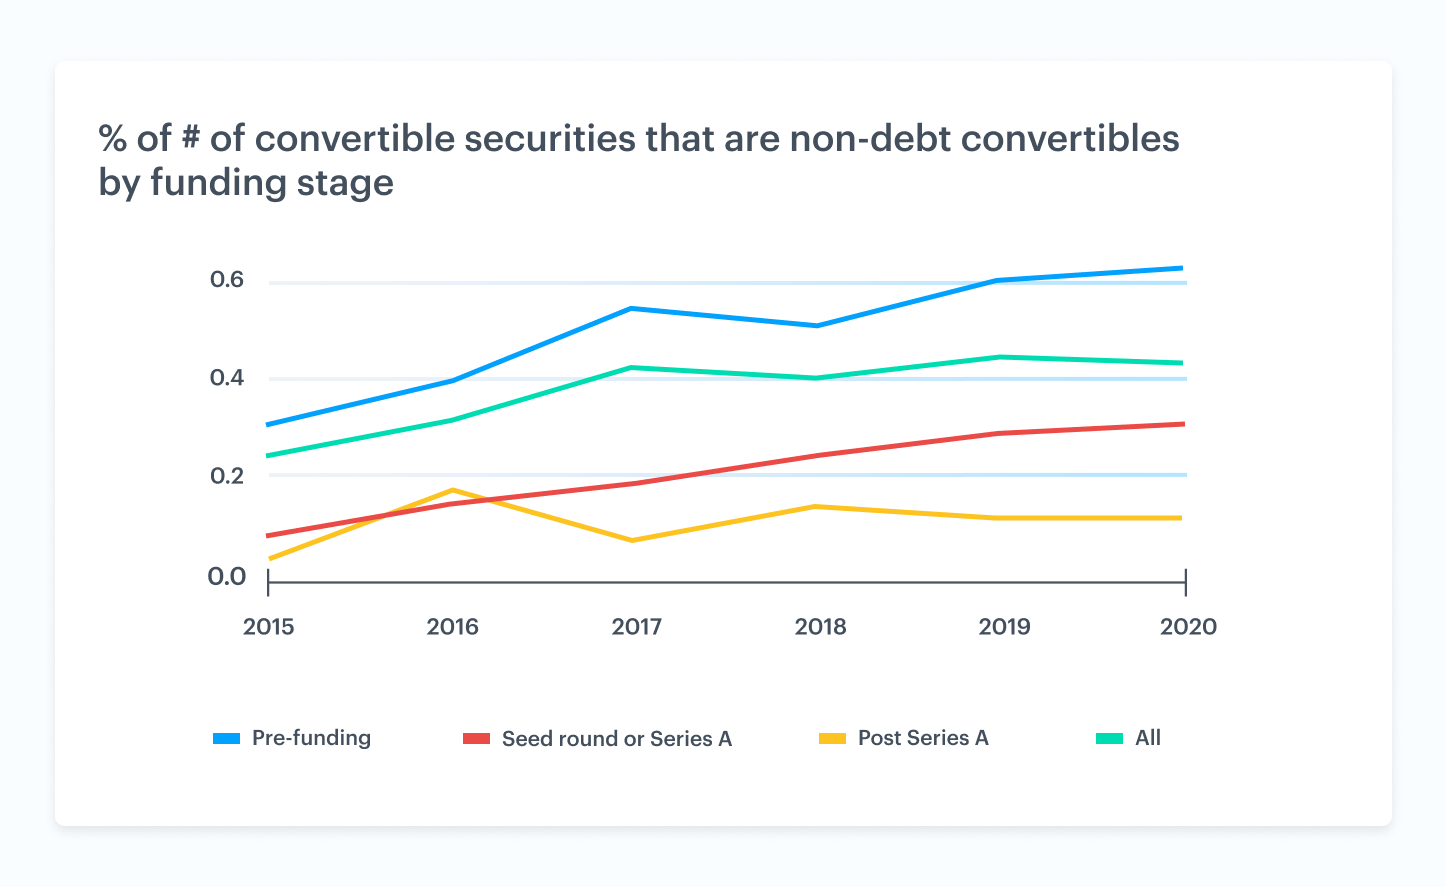 % of # of convertible securities that are non-debt convertible securities by funding stage